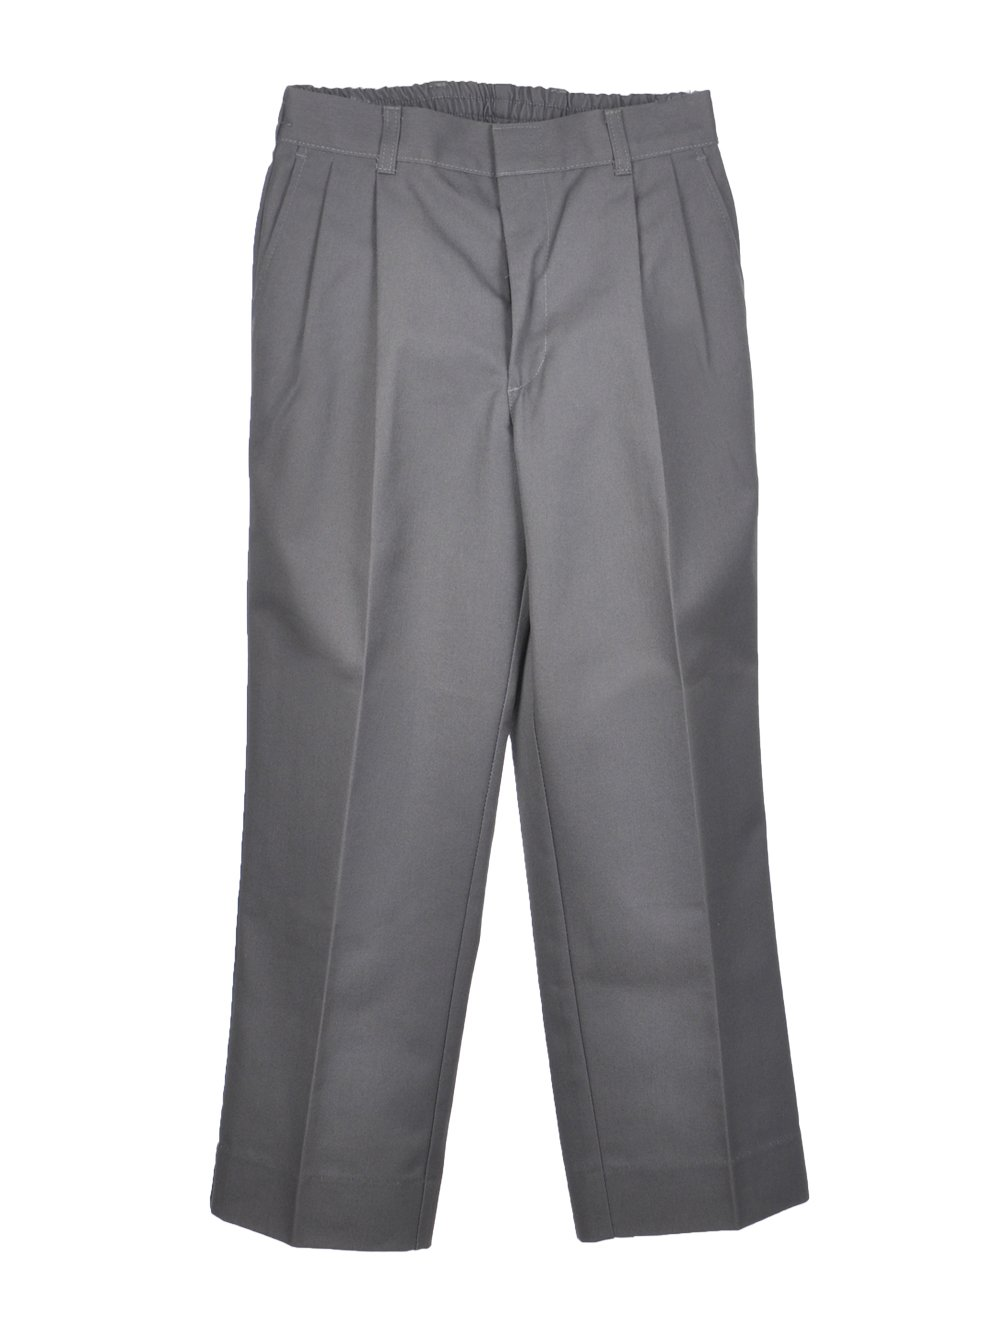 Rifle Boys Pleated Pants (Husky Sizes) - gray, 29h